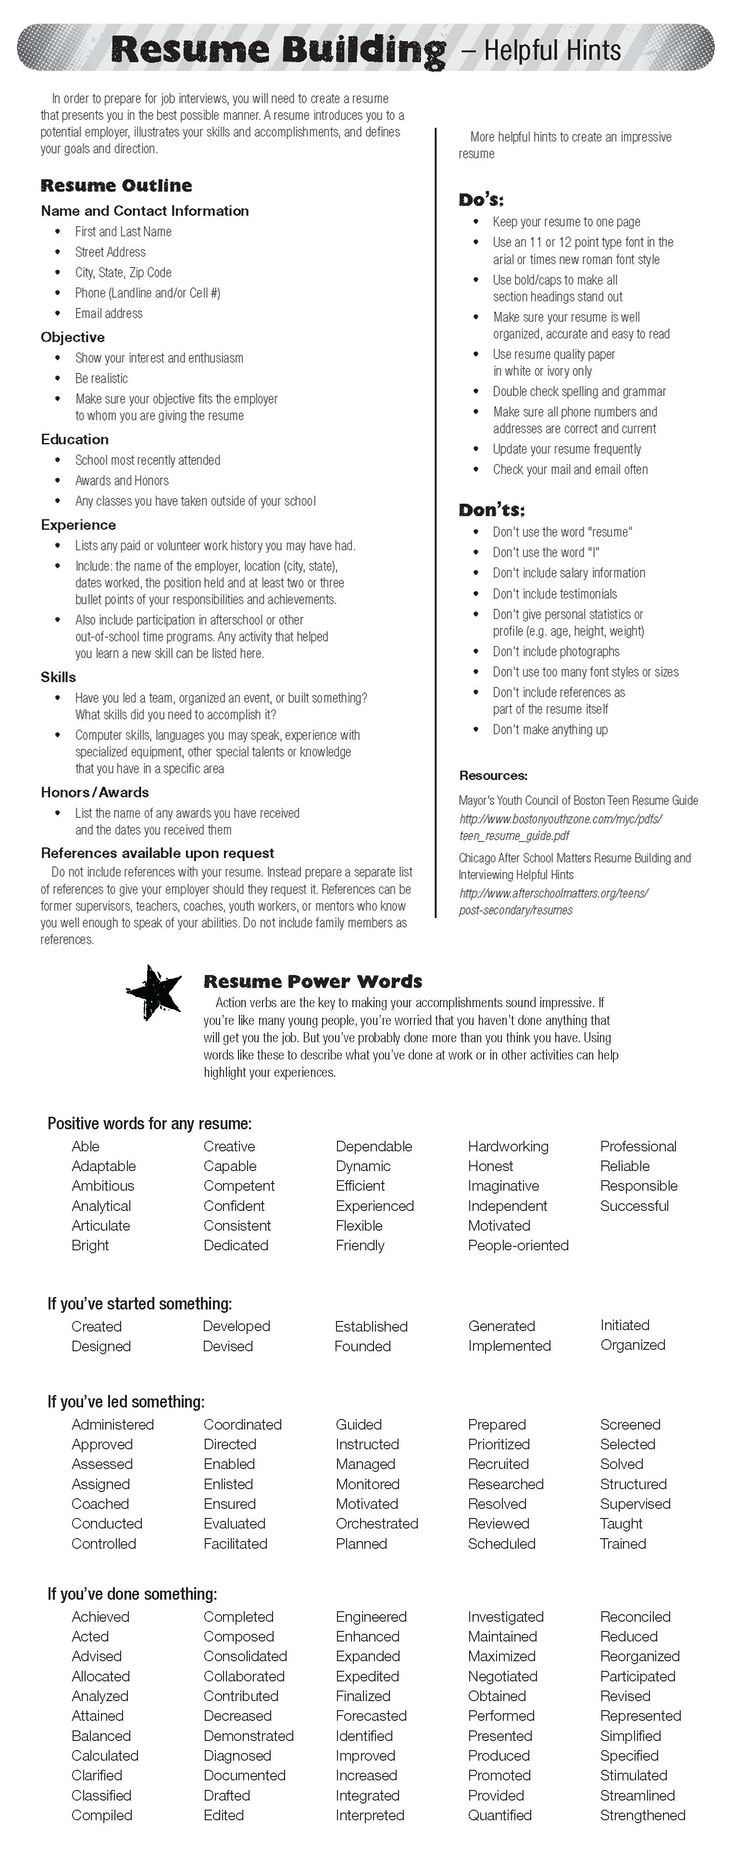 Opposenewapstandardsus  Pretty  Ideas About Resume On Pinterest  Cv Format Resume Cv And  With Engaging  Ideas About Resume On Pinterest  Cv Format Resume Cv And Resume Templates With Easy On The Eye Resume For College Student Also Cover Letter Examples For Resume In Addition Computer Science Resume And Education On Resume As Well As Best Resume Examples Additionally Livecareer Resume Builder From Pinterestcom With Opposenewapstandardsus  Engaging  Ideas About Resume On Pinterest  Cv Format Resume Cv And  With Easy On The Eye  Ideas About Resume On Pinterest  Cv Format Resume Cv And Resume Templates And Pretty Resume For College Student Also Cover Letter Examples For Resume In Addition Computer Science Resume From Pinterestcom